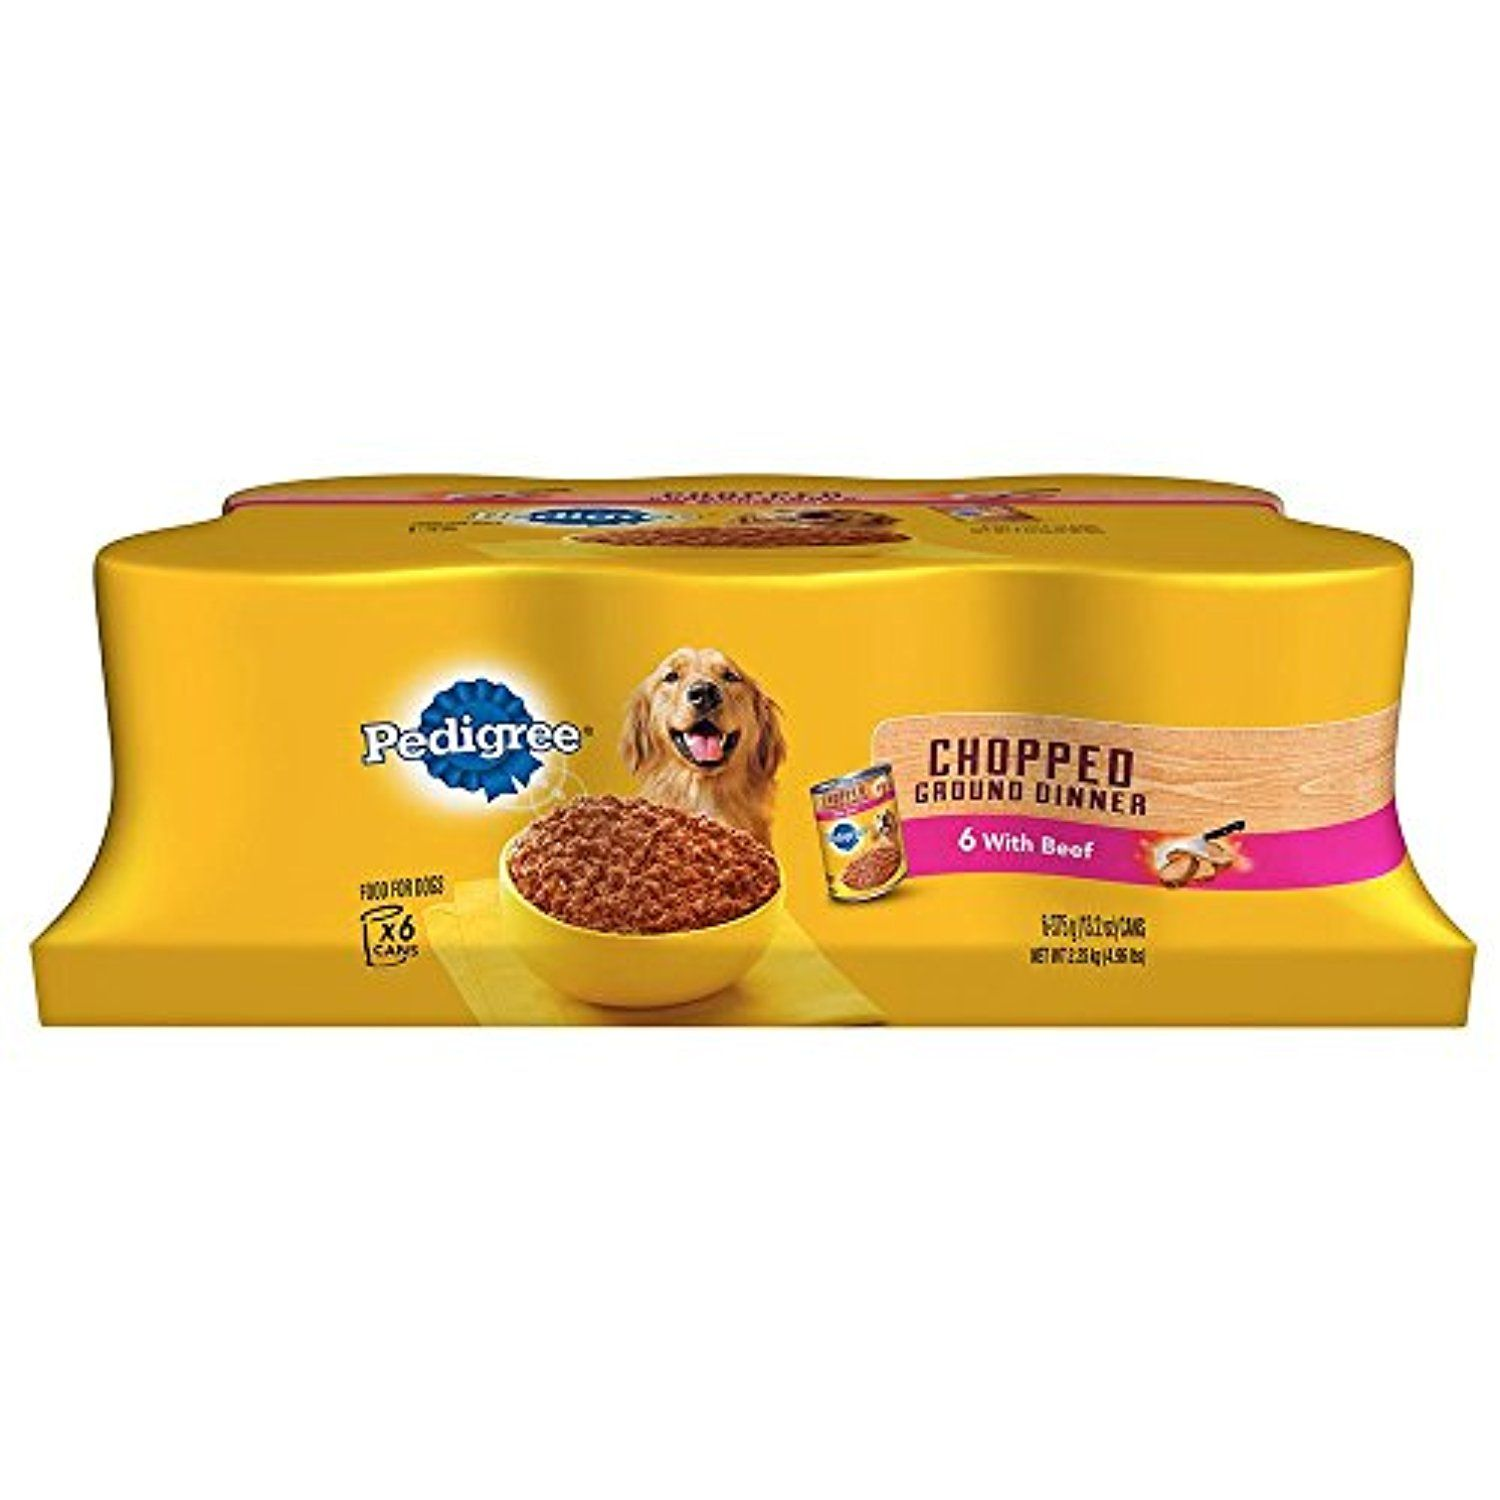 Pedigree Wet Foods Traditional 6 Count Ground Dinner Chopped Beef